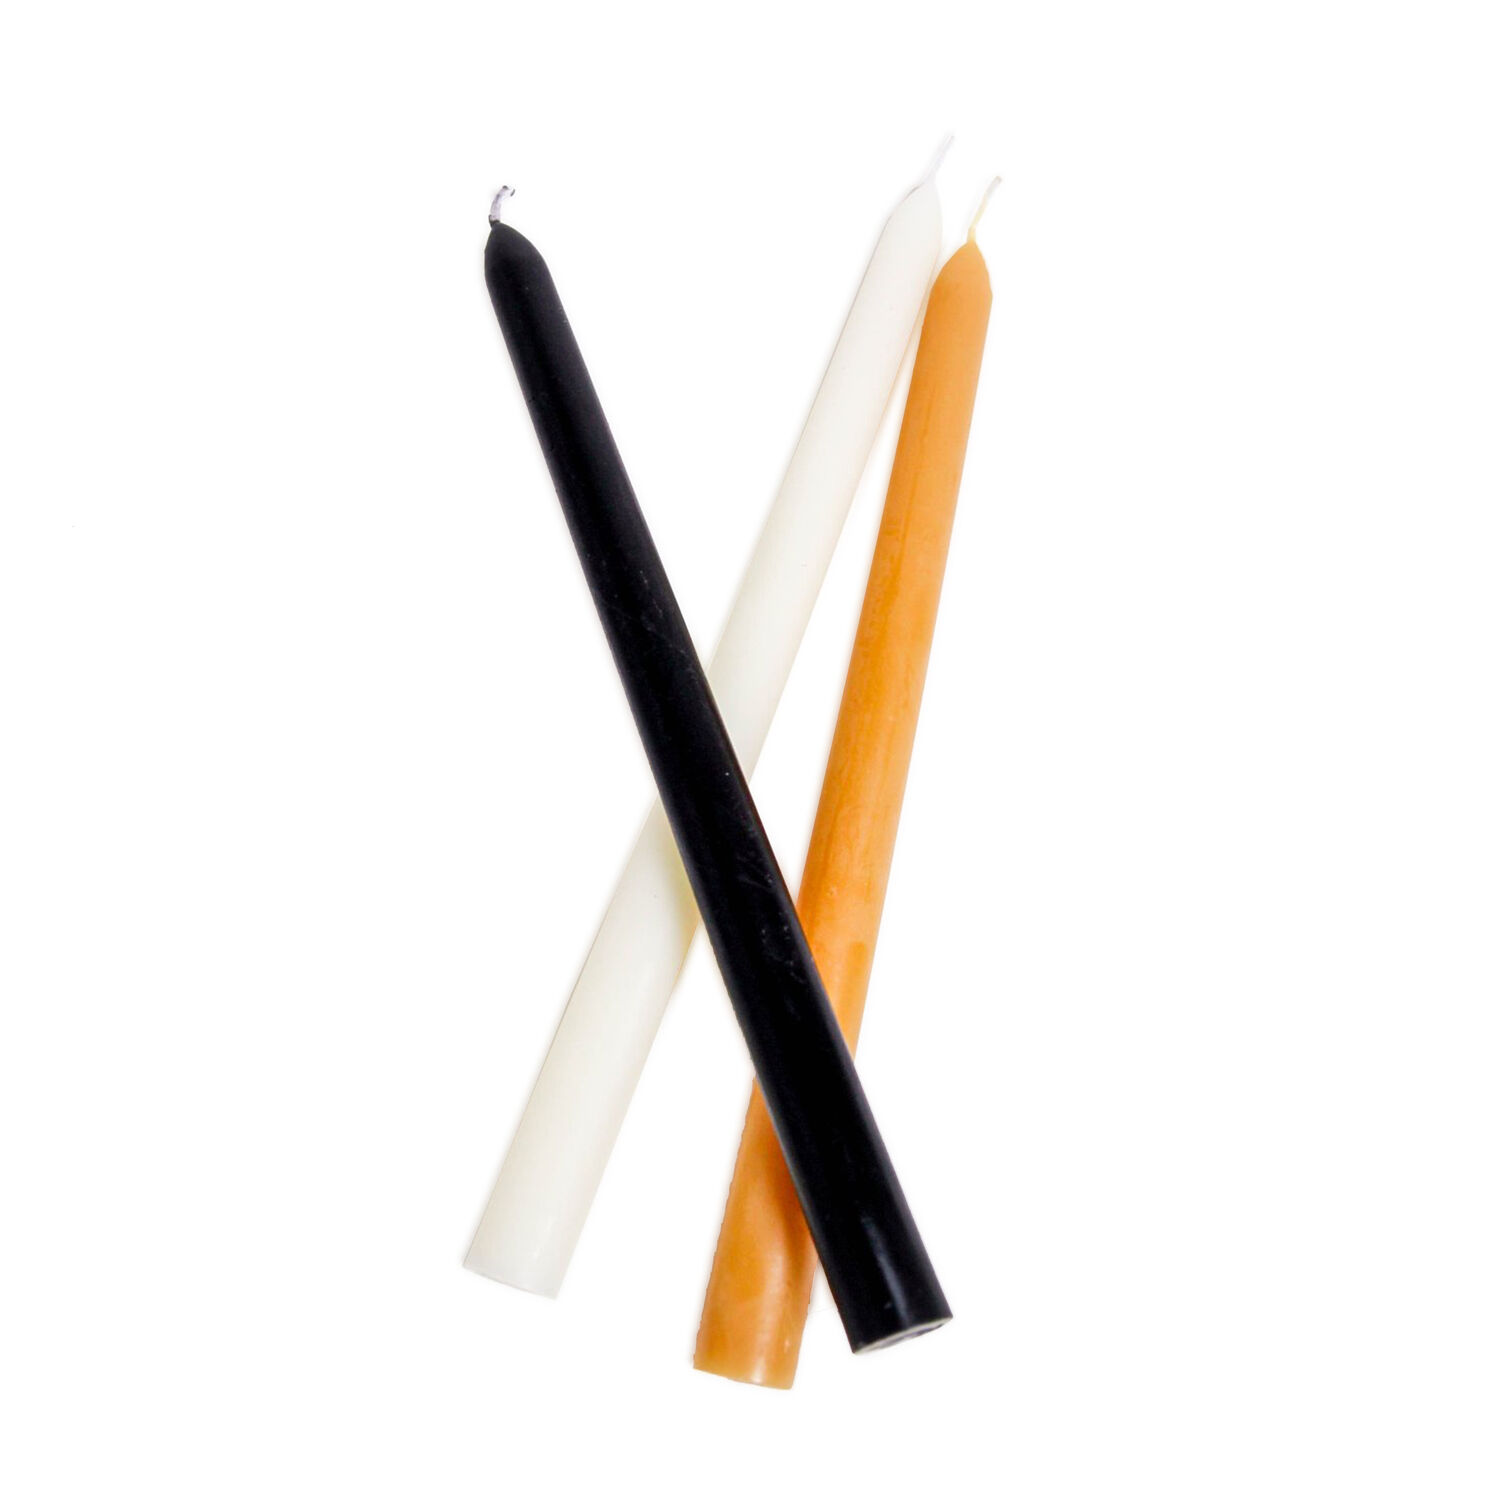 Everyday Taper Candles